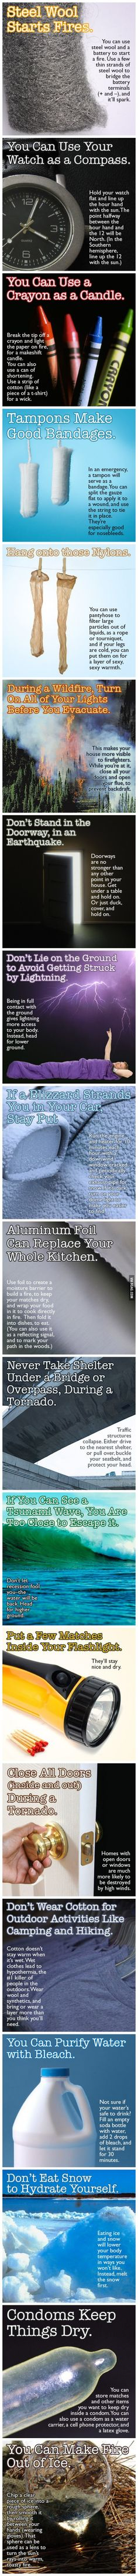 19 tips and tricks that CAN save your life.